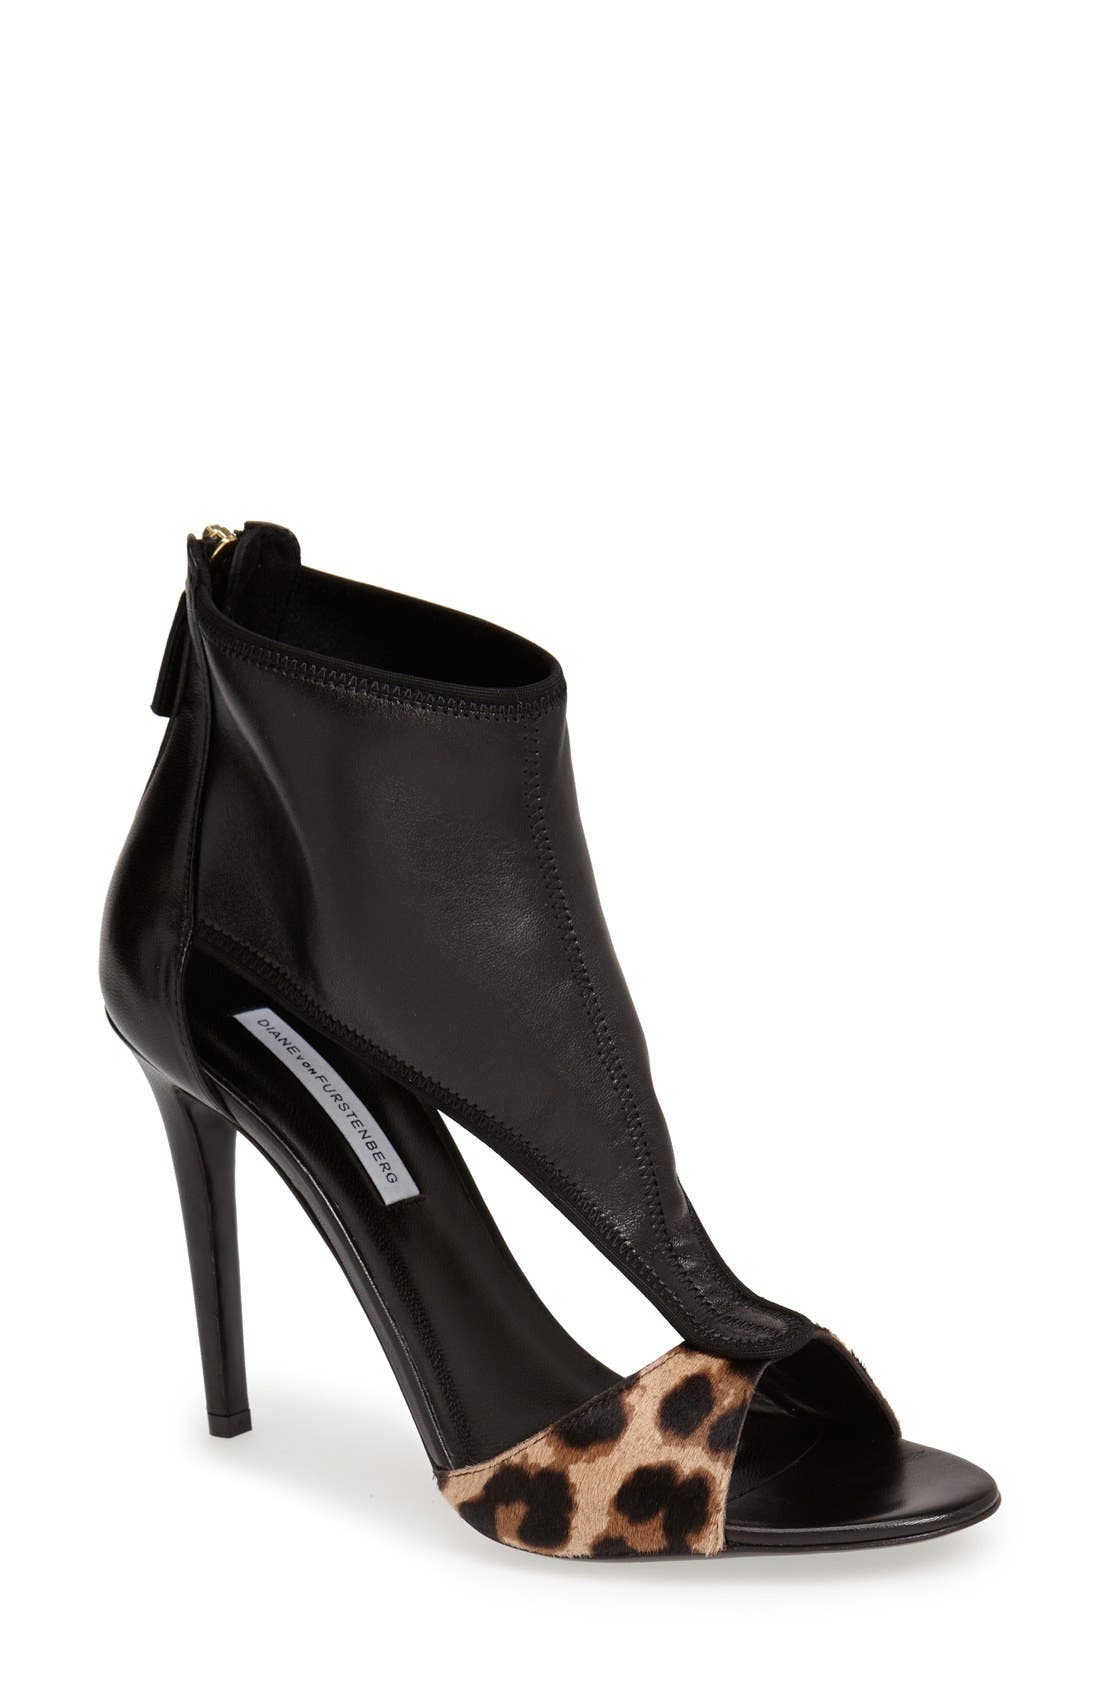 Alternate Image 1 Selected - Diane von Furstenberg 'Uffie' Leather & Calf Hair Sandal